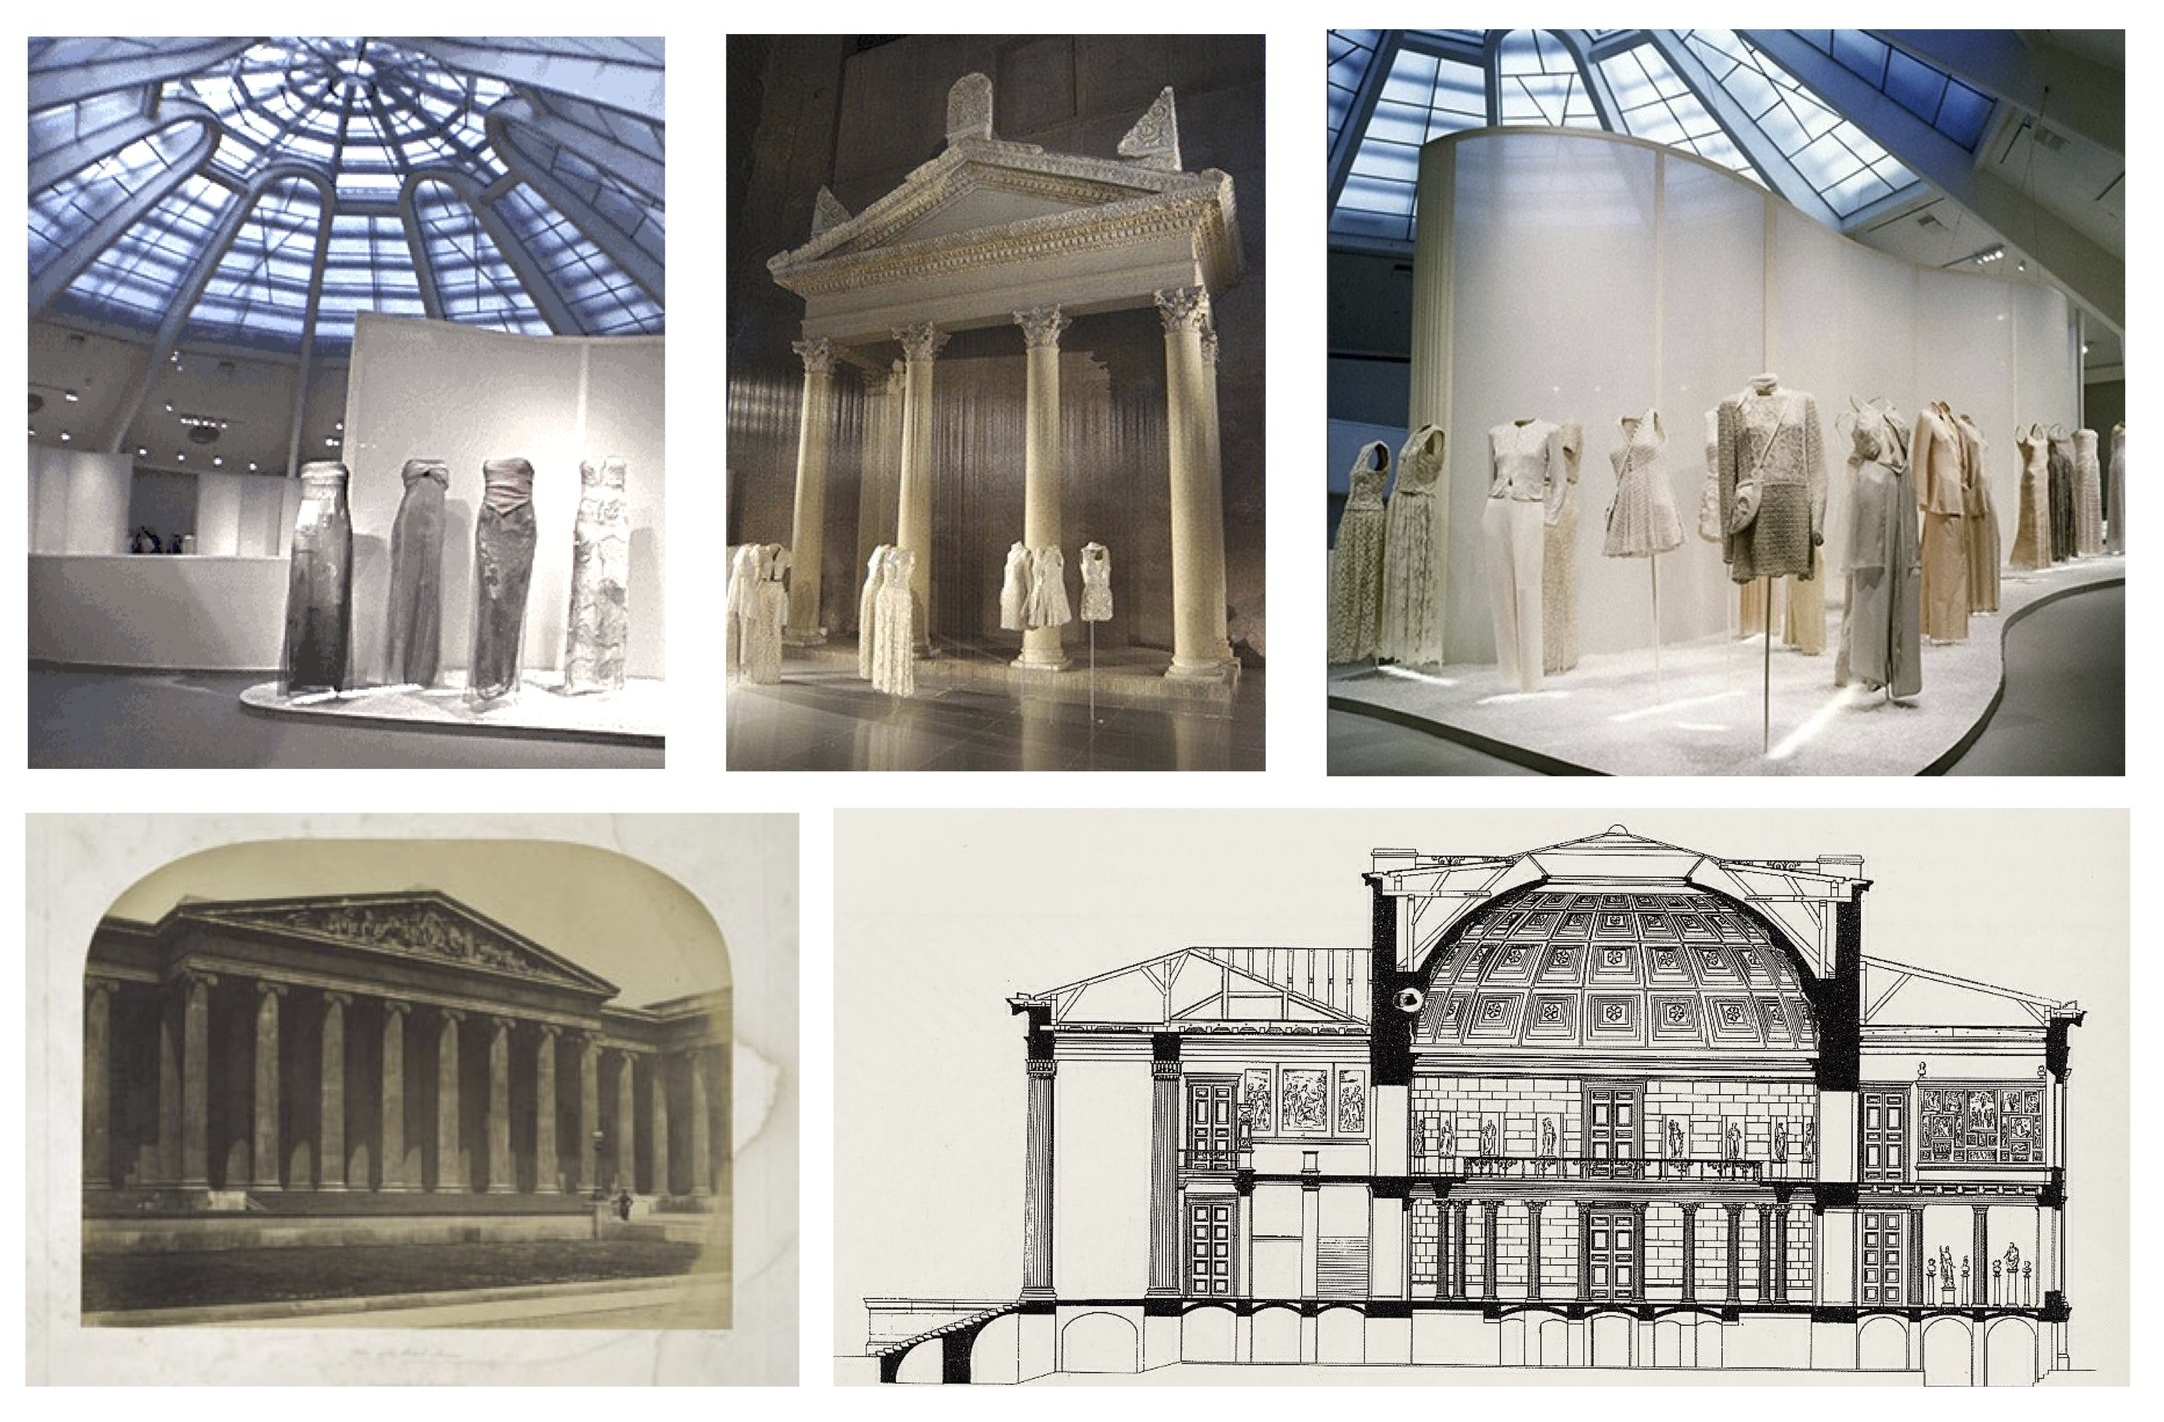 Paula Alaszkiewicz, slide from 'The Labyrinth of Fashion Display,' 2017 Installation views of  Giorgio Armani , Guggenheim, 2000 (Top); British Museum, c. 1859-1859 (Bottom Left); Section of Altes Museum, designed 1830 (Bottom Right)